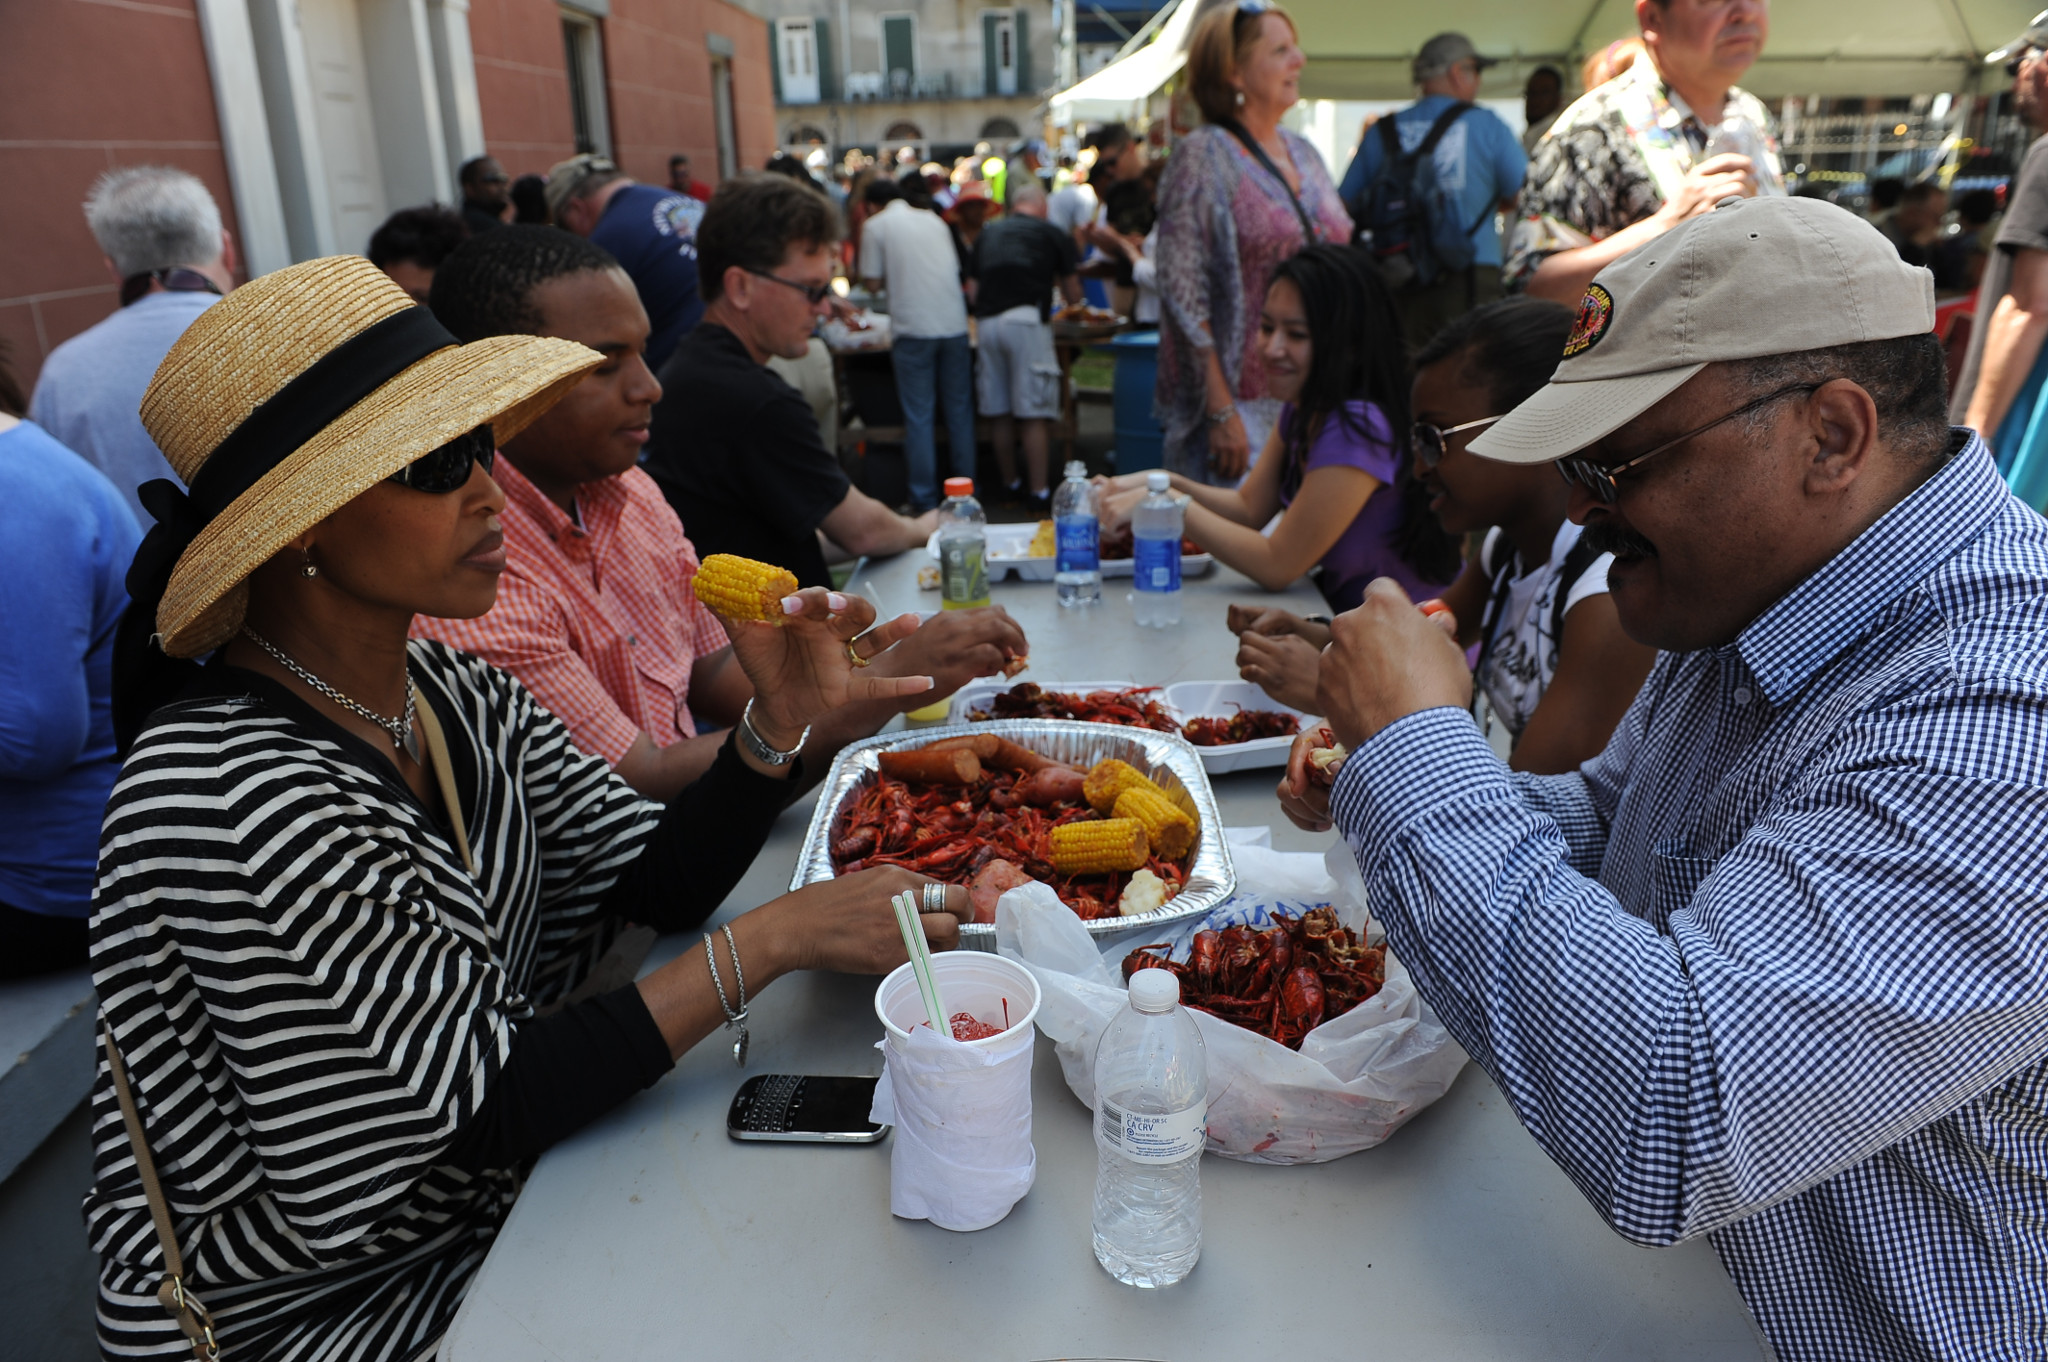 Eating crawfish at French Quarter Fest is a springtime rite of passage. (Photo: Cheryl Gerber)